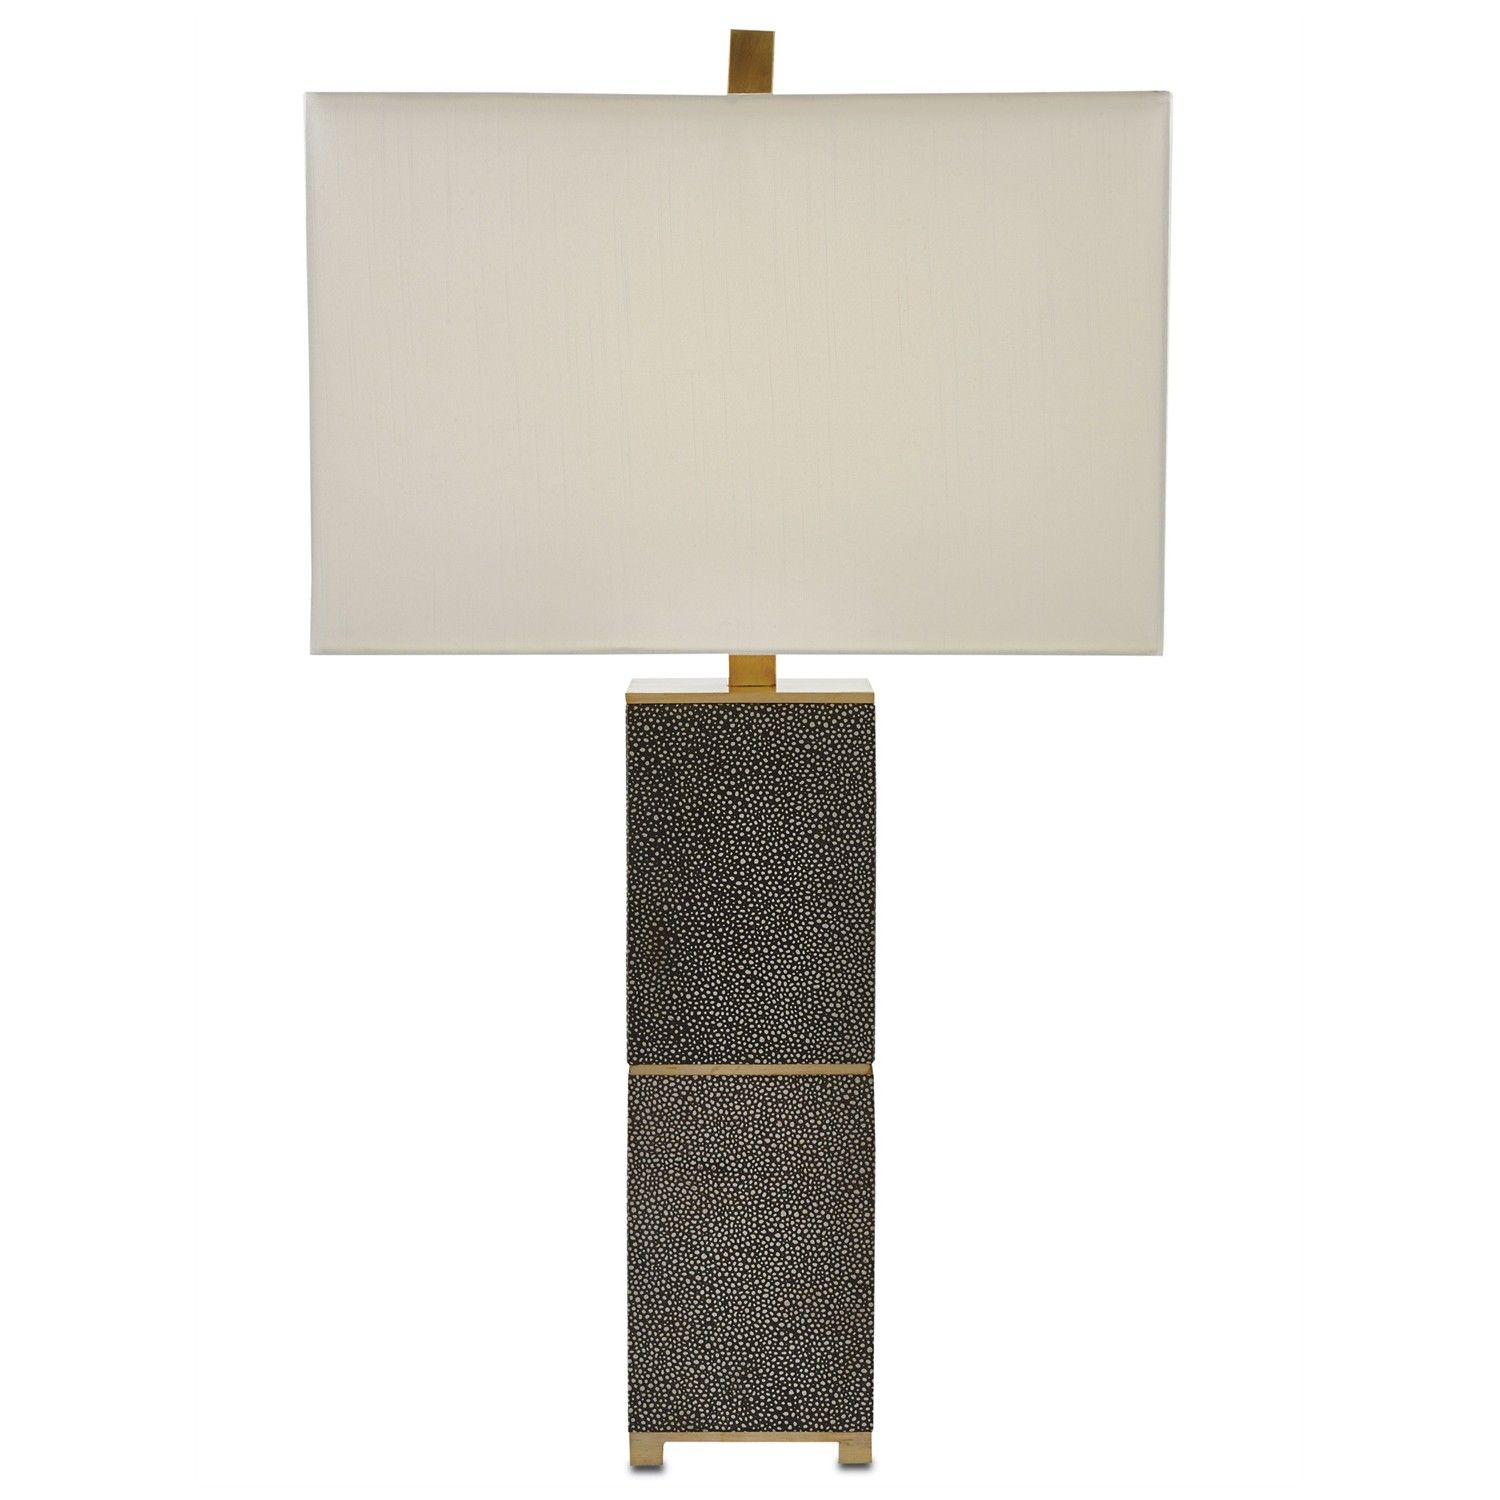 Currey And Company Beauchamp Table Lamp Buffet Lamps Lamps Lighting Candelabra Inc Lamp Table Lamp Modern Table Lamp